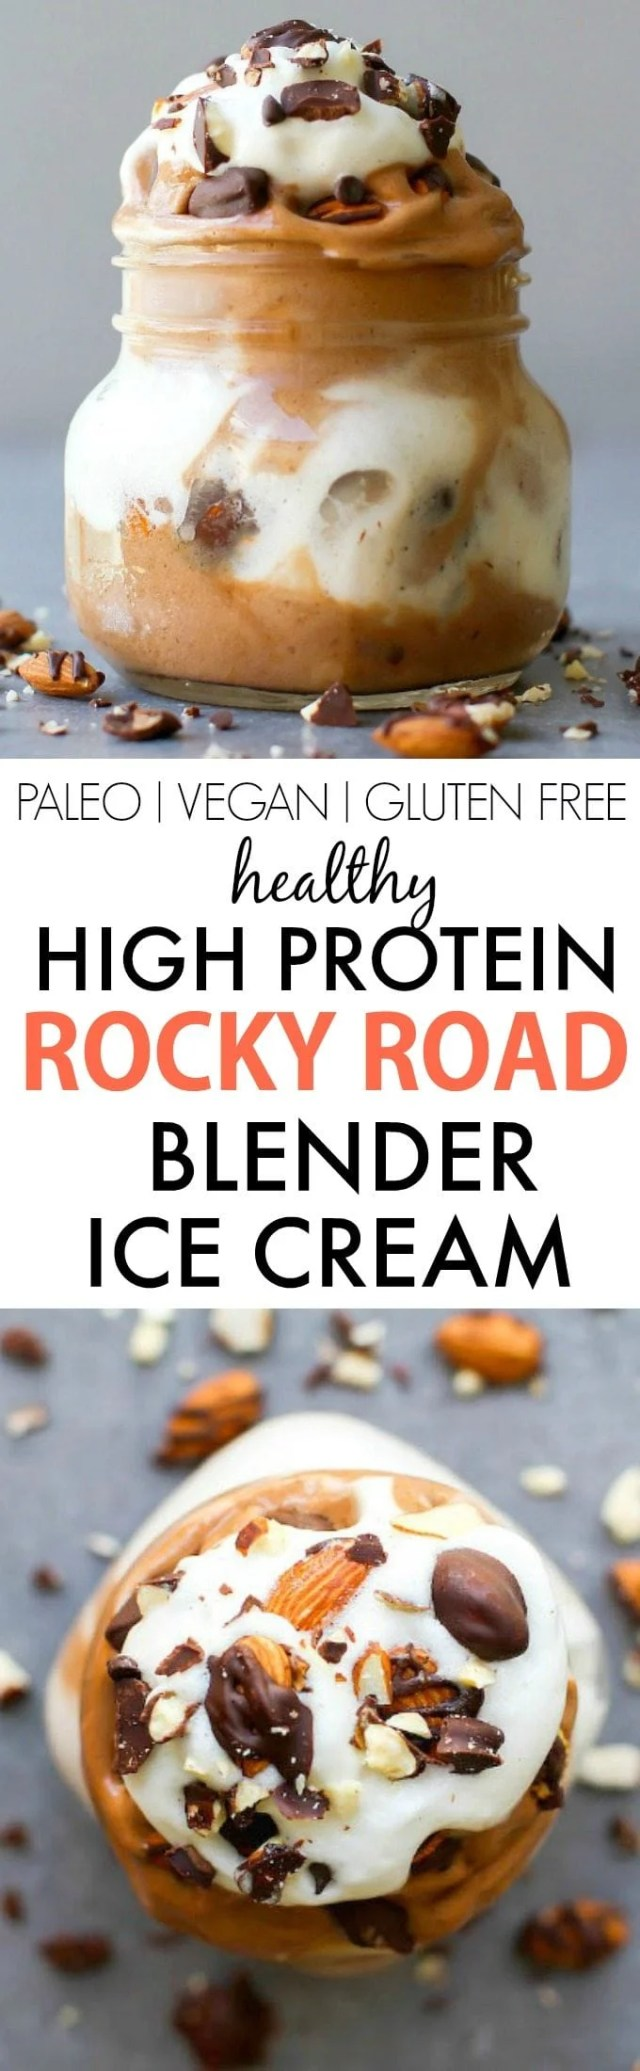 Healthy Rocky Road BLENDER Ice Cream- Smooth, thick and creamy and LOADED with protein, this simple, easy blender made ice cream (nice cream) has NO dairy, cream, sugar or nasties- An Aquafaba option too! {vegan, gluten free, paleo recipe}- thebigmansworld.com